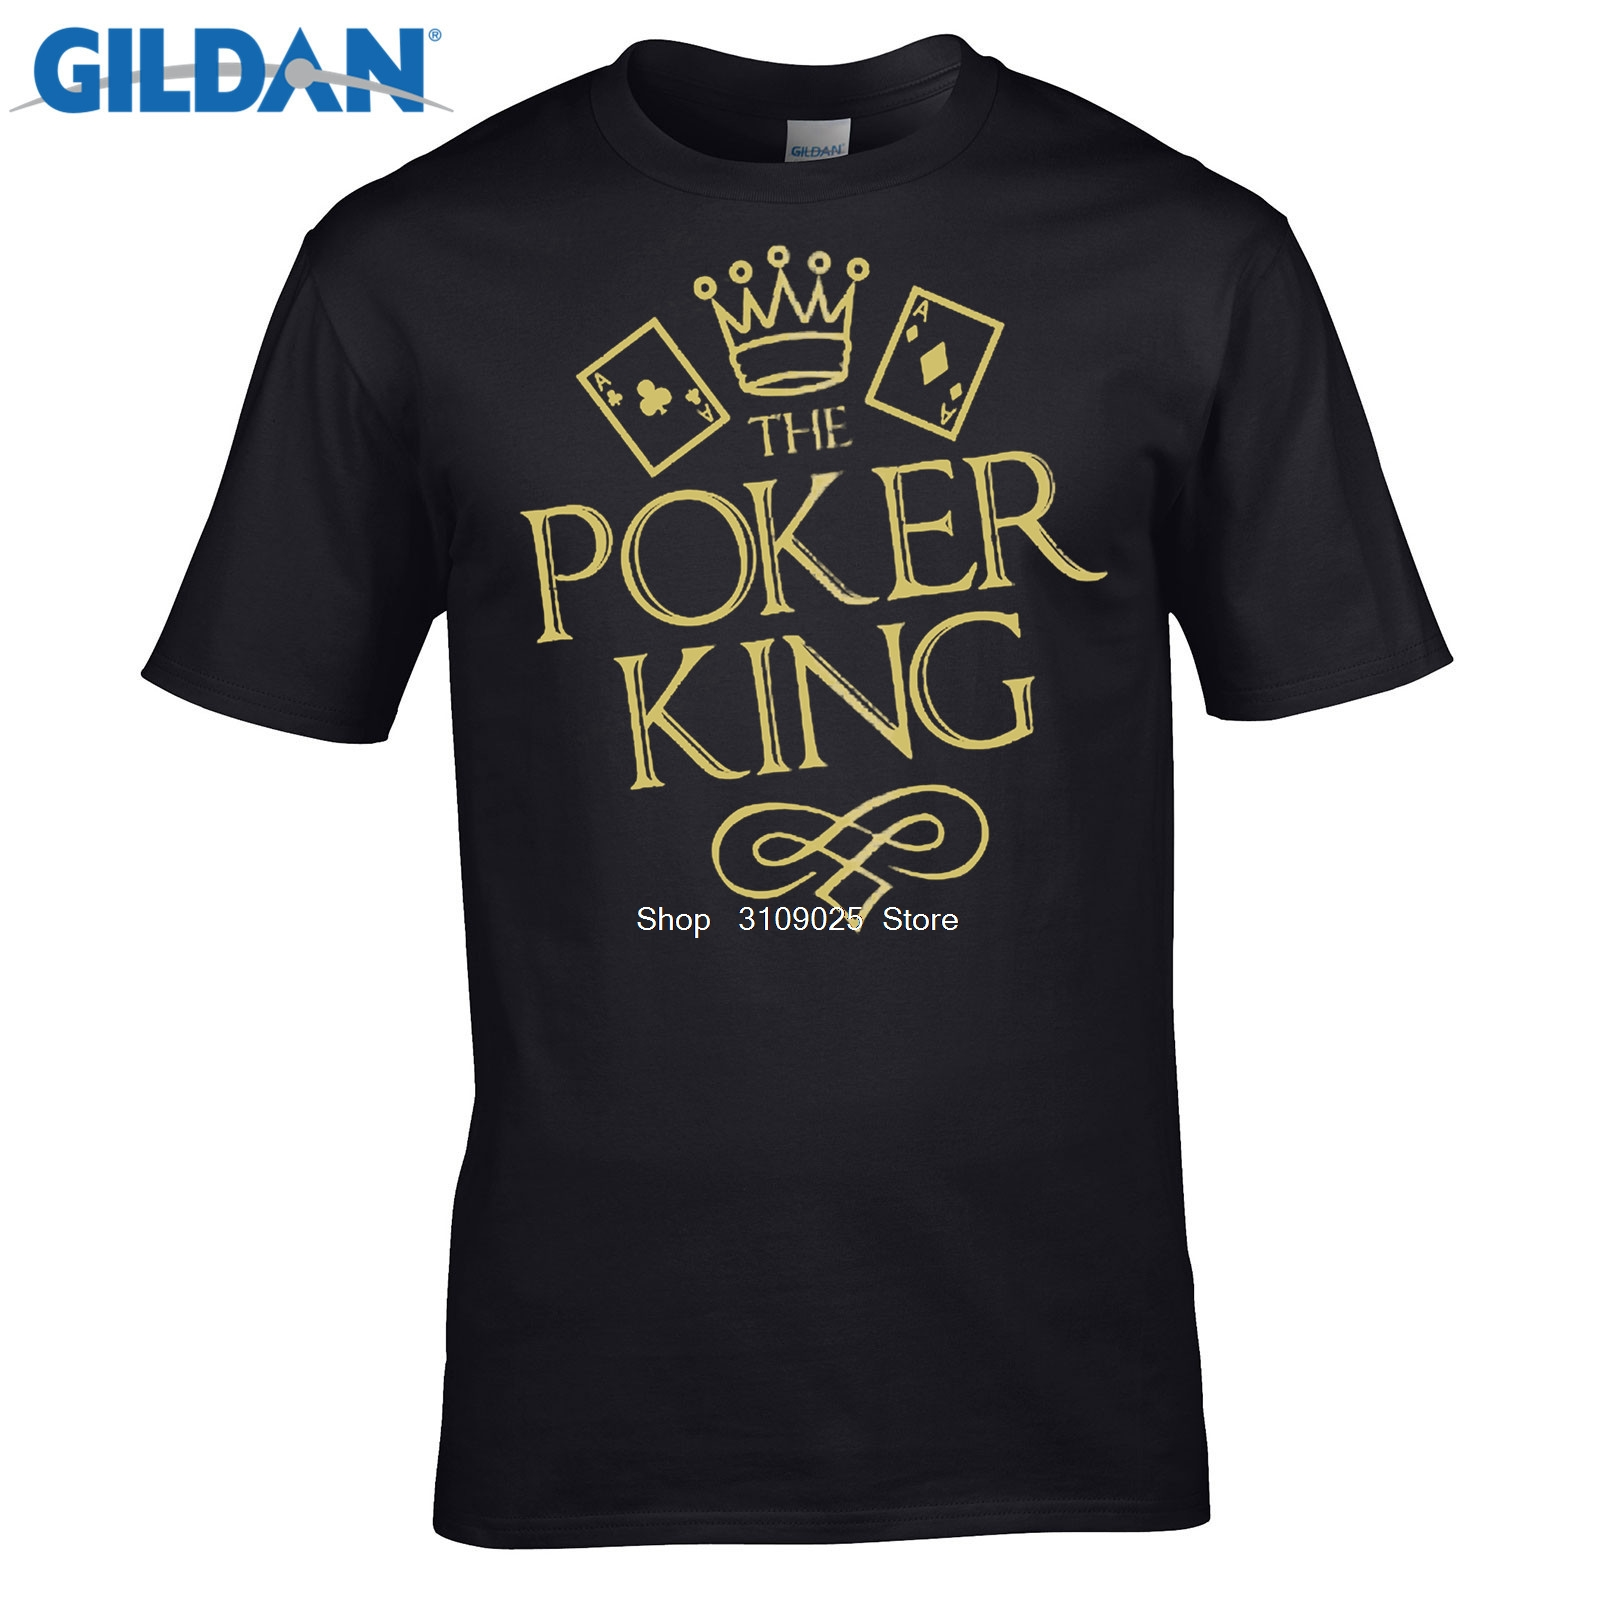 GILDAN 2017 Summer brand clothing Solid Color Men T shirt The Poker King Texas Hold Em Flush Gold Metallic Skate T-shirt